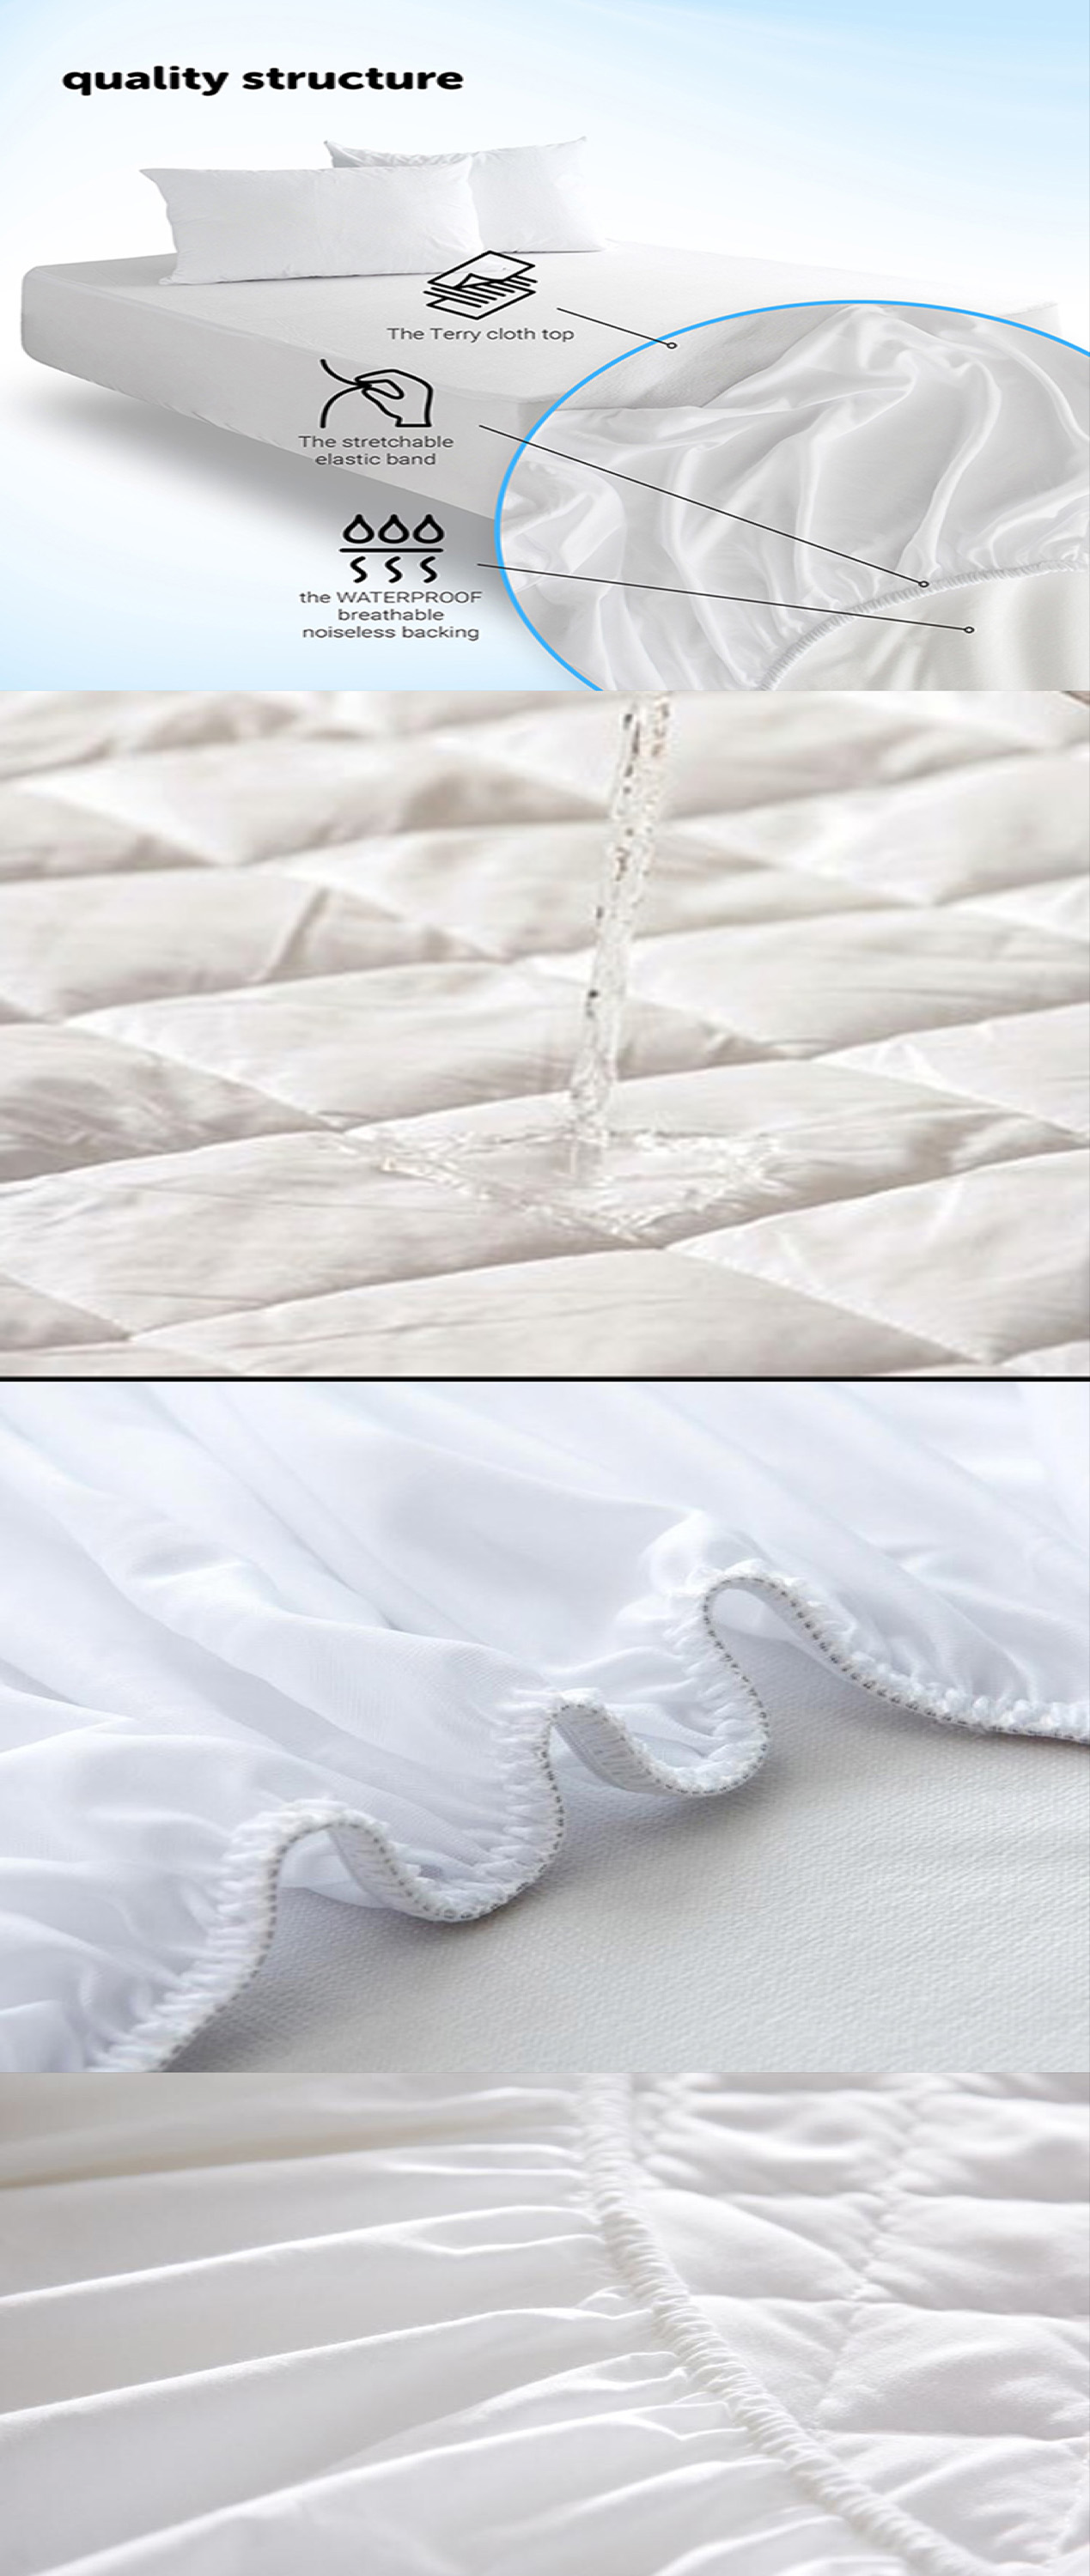 Manufacturer supply bed mattress protector Lining bed cover Lining bed mattress protector - Jozy Mattress | Jozy.net